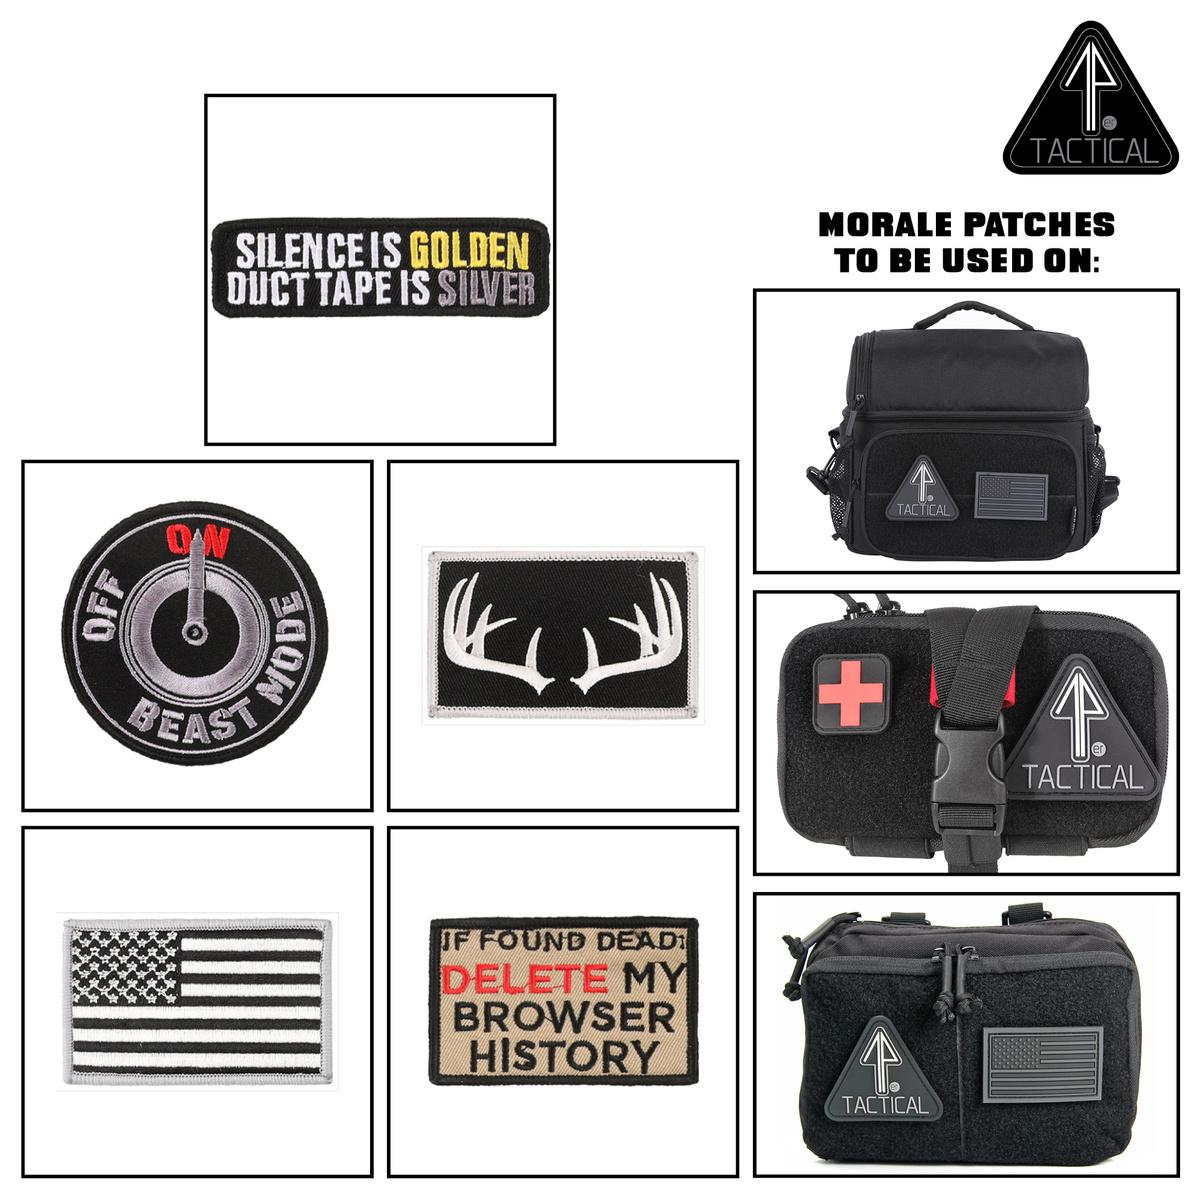 14er Morale Patches can be attached through Velcro to a 14er Tactical Lunch Bag, IFAK, or Admin Pouch.